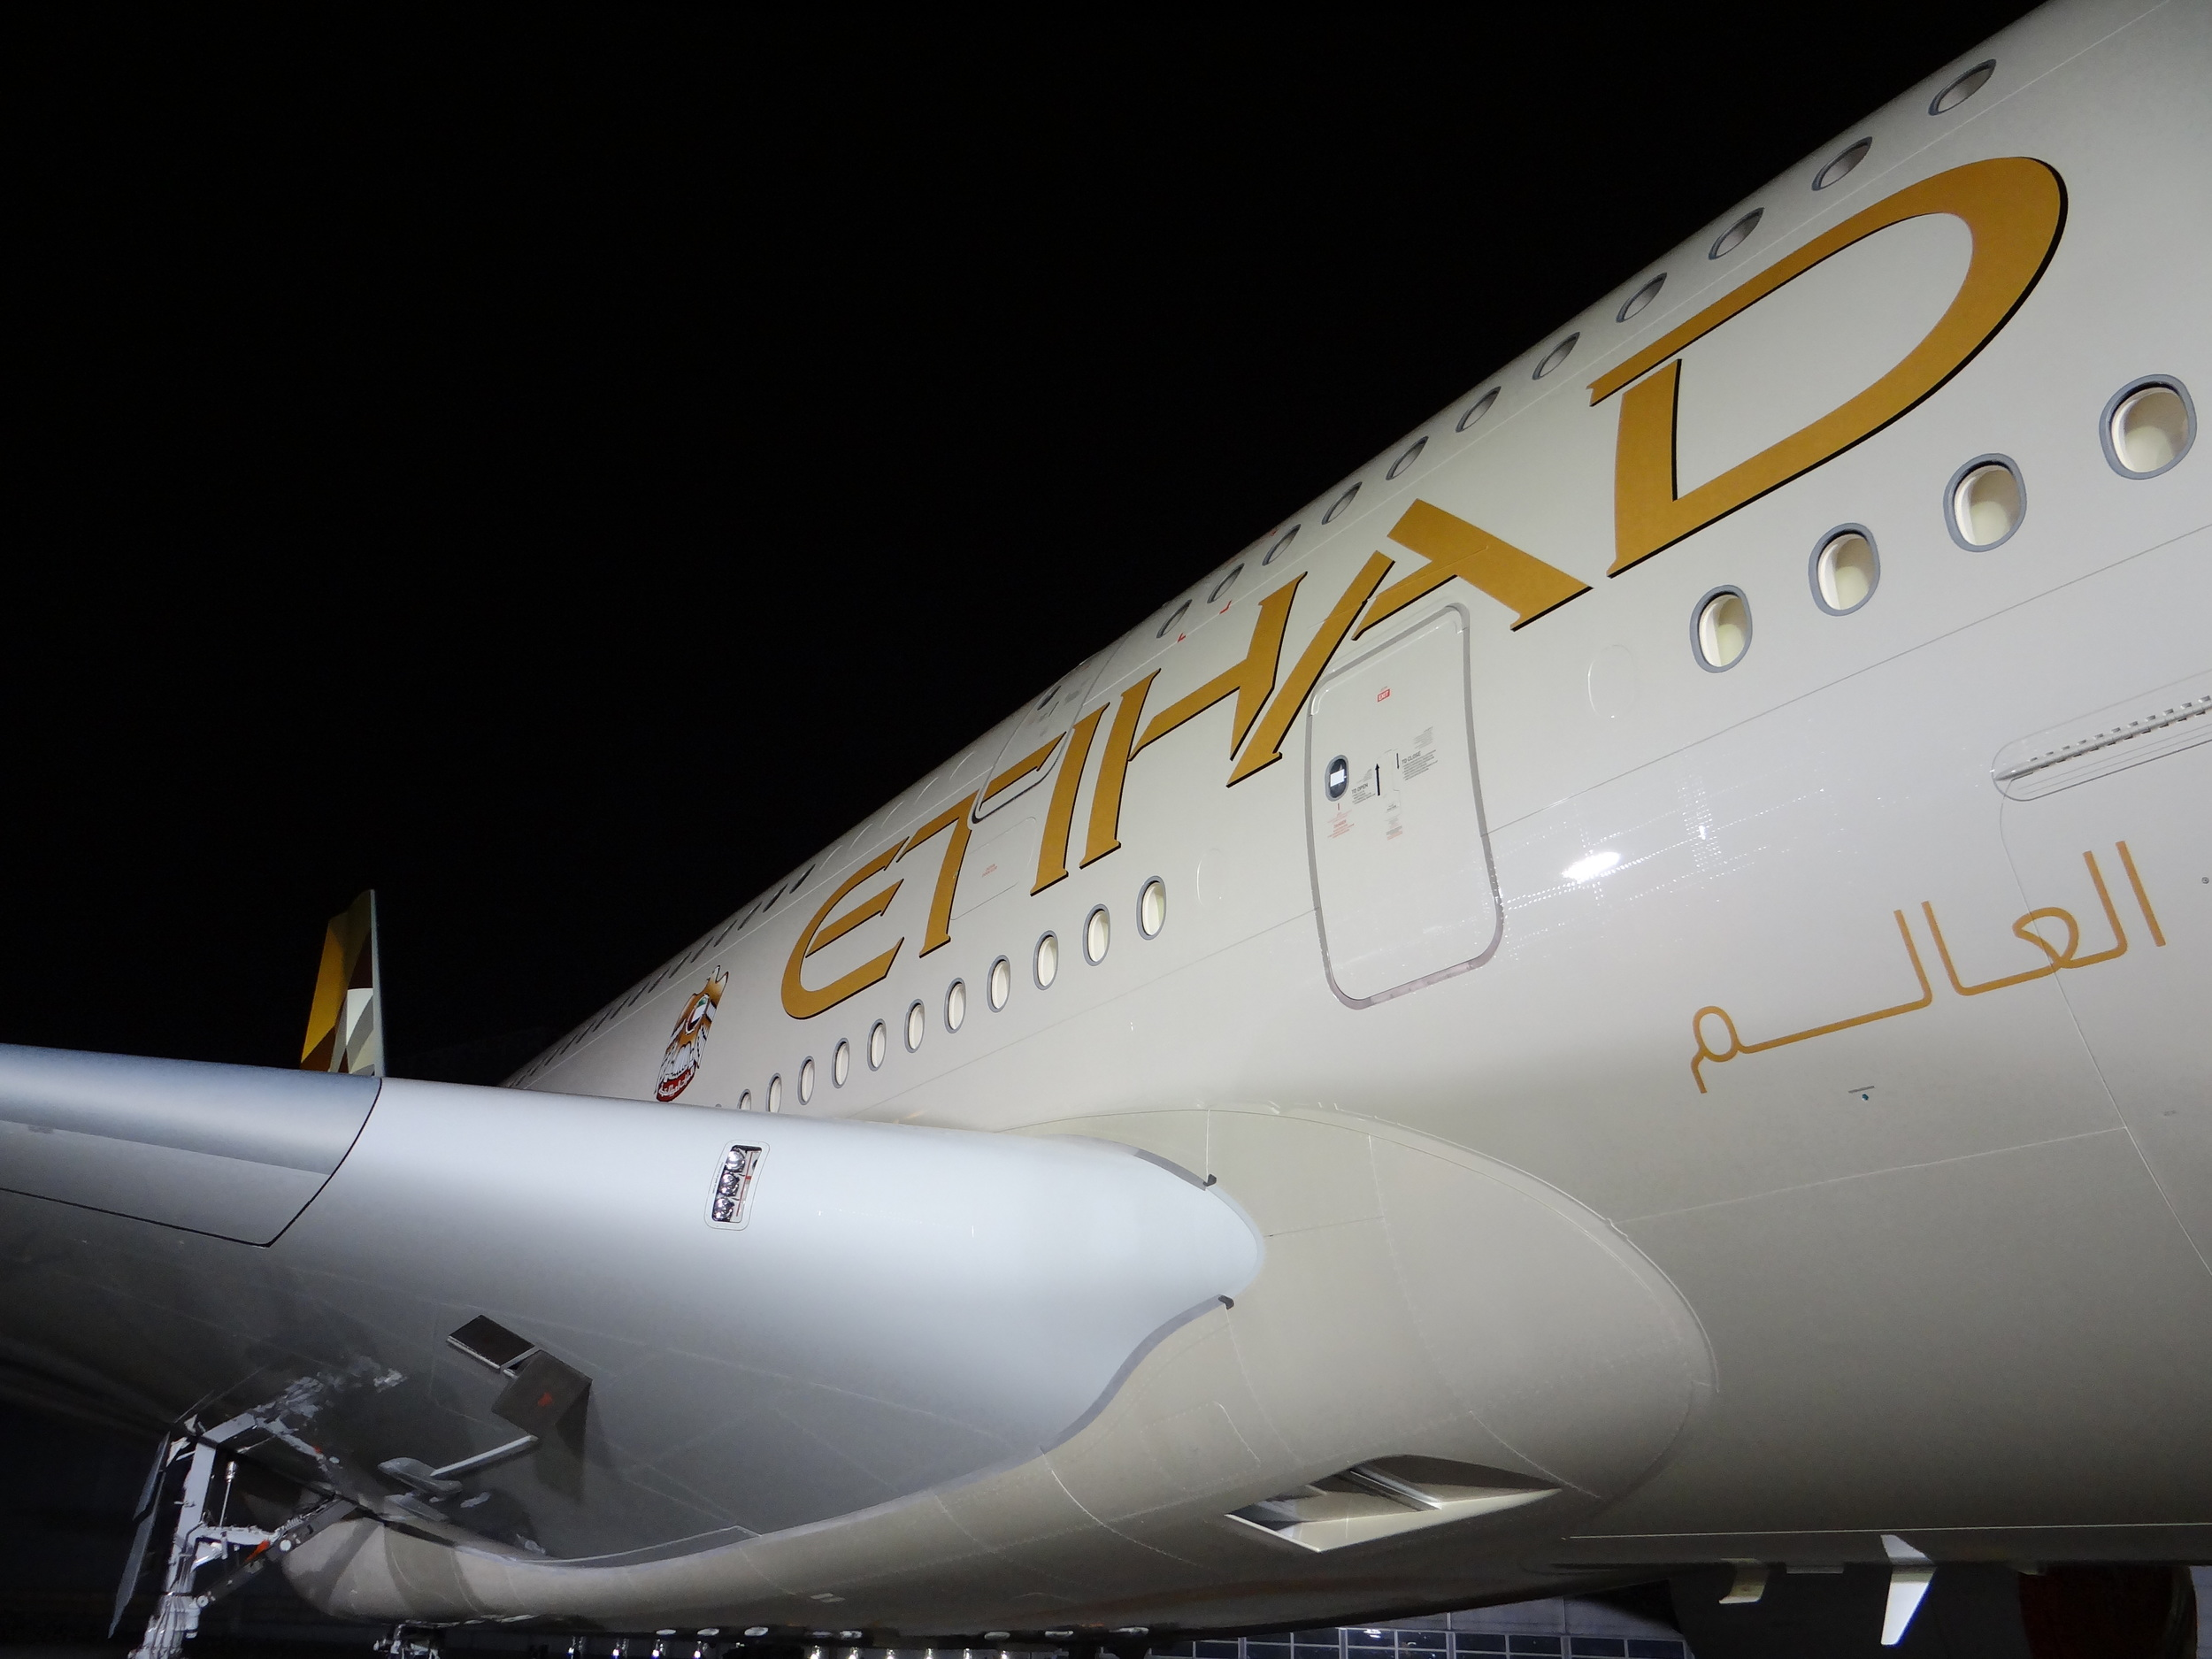 Another lateral close-up of the Airbus A380